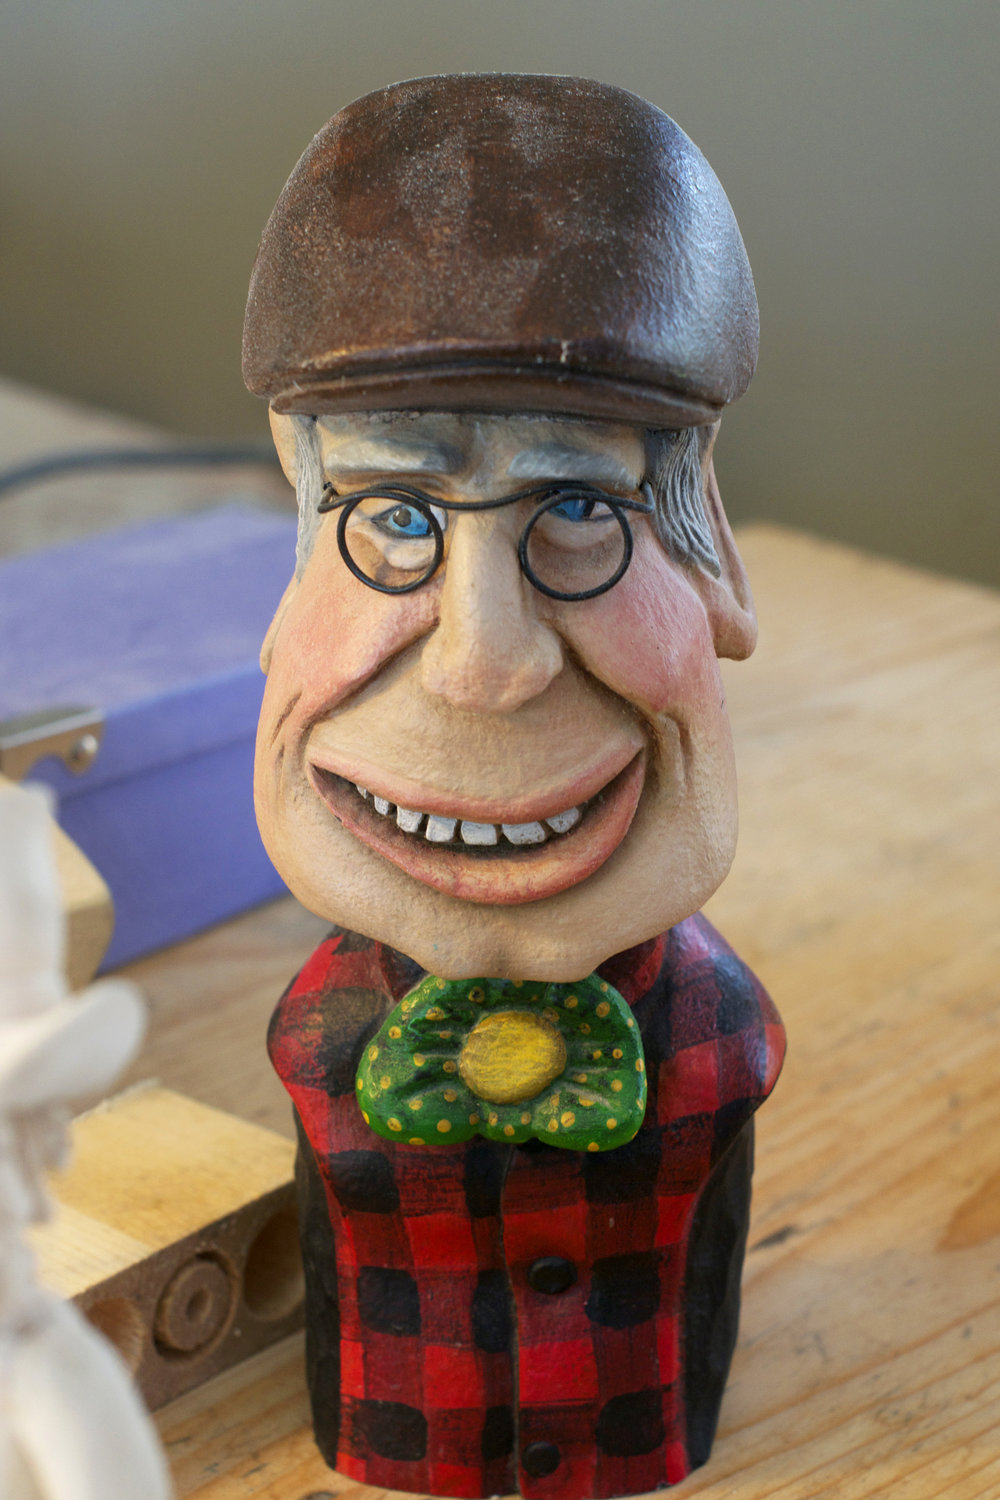 luc's-carving-sculpture-likeness-of-himself.jpg